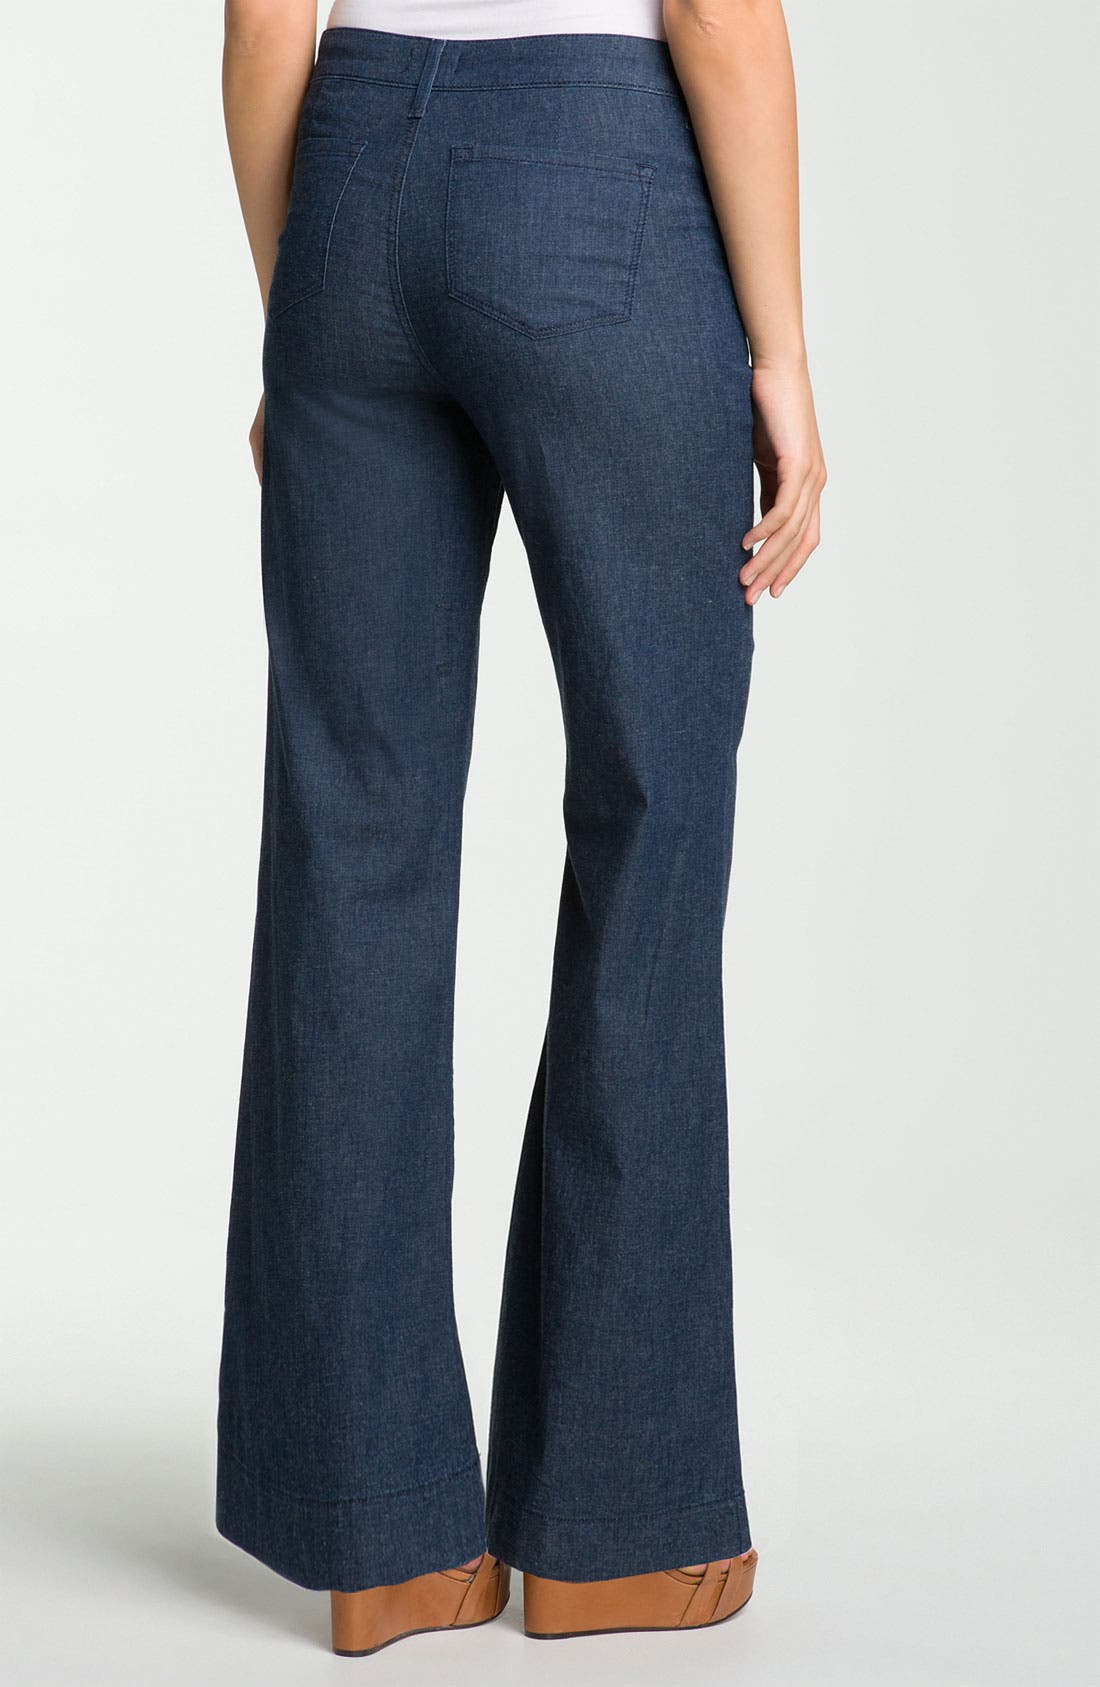 Alternate Image 2  - NYDJ 'Tina Sailor' Wide Leg Jeans (Petite)